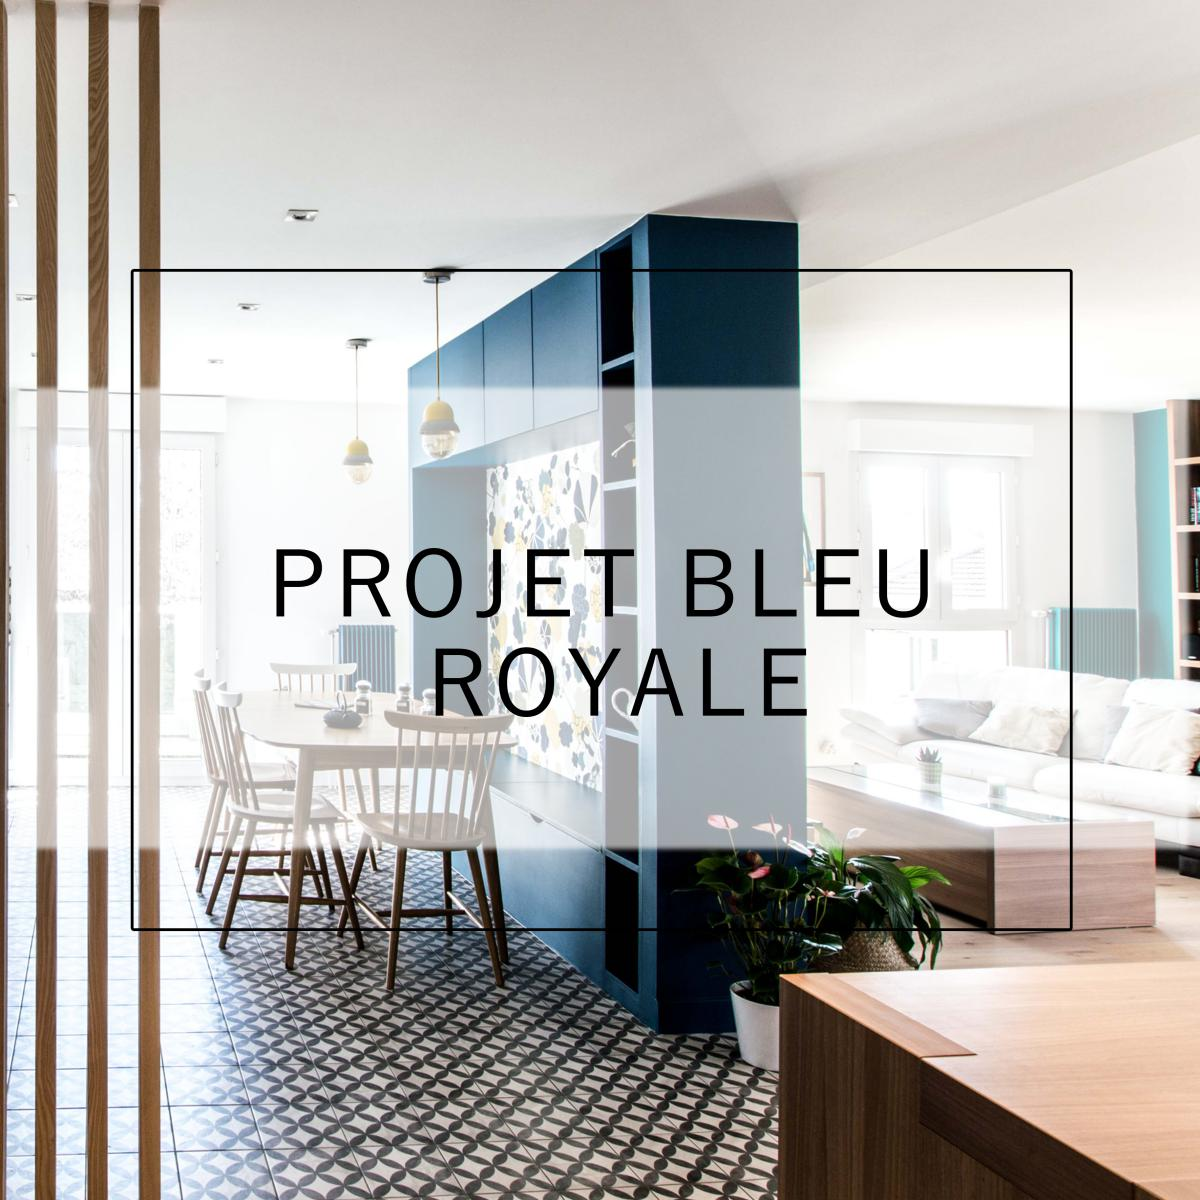 Avril 2018 - Bleu Royal -Lyon